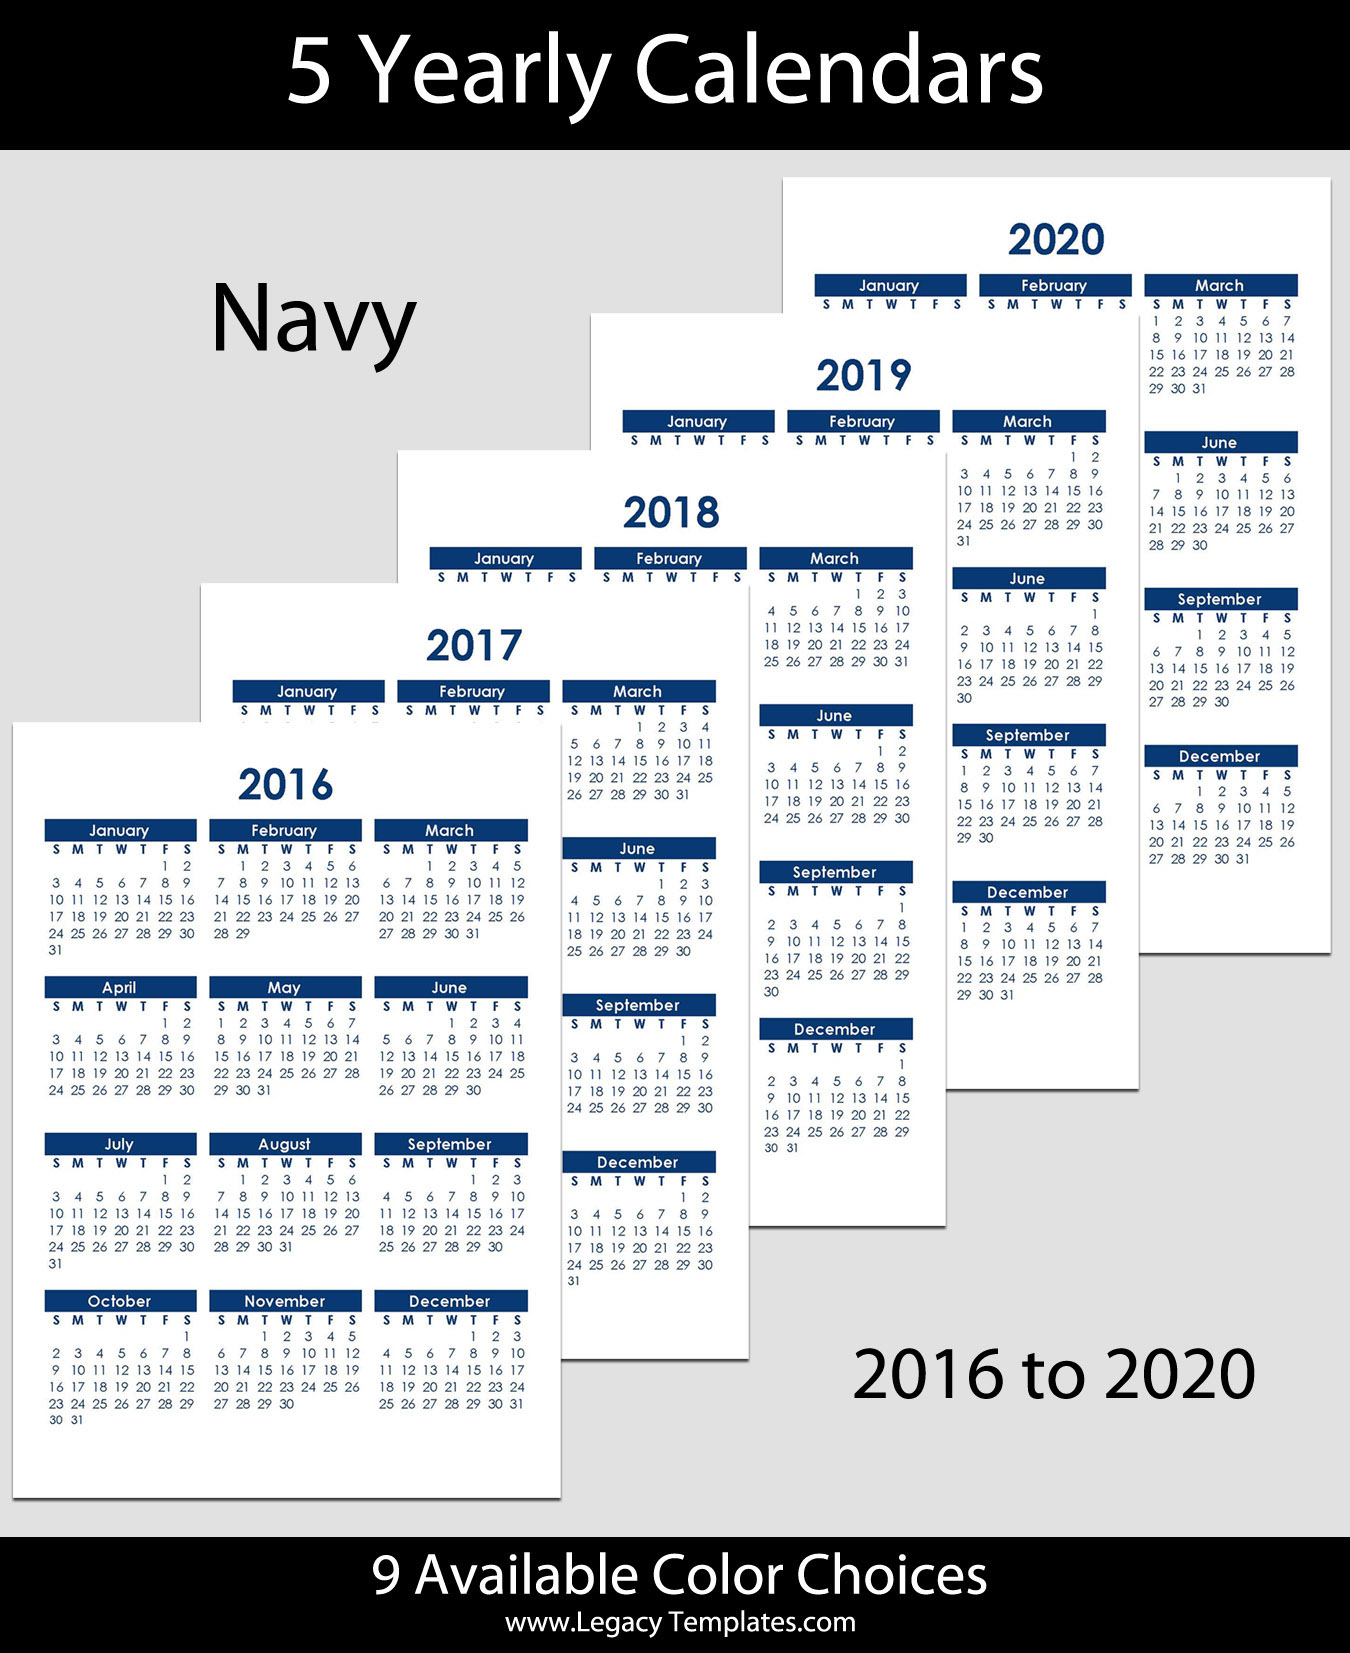 2016 To 2020 Yearly Calendar A4 Legacy Templates